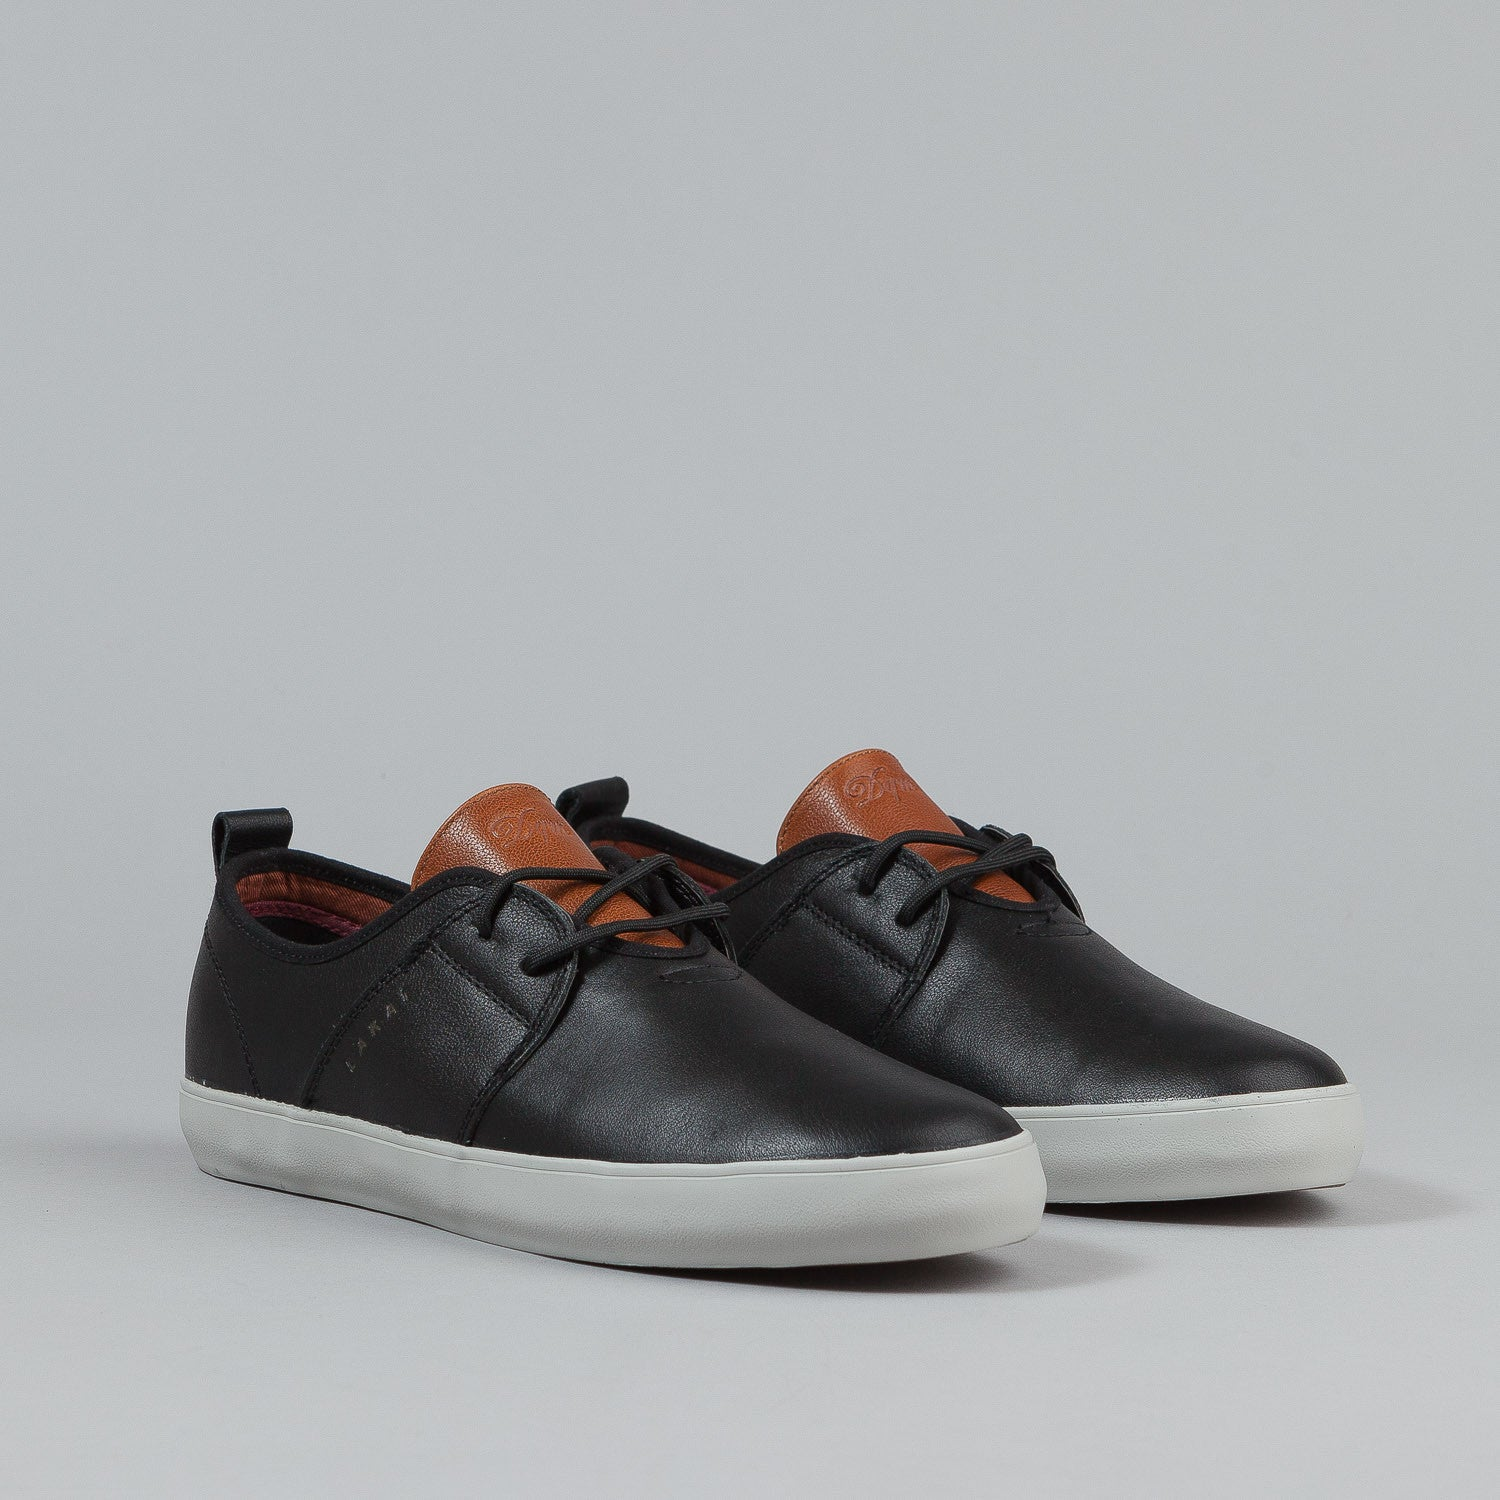 Lakai X DQM Albany Echelon Shoes - Black / Brown Leather